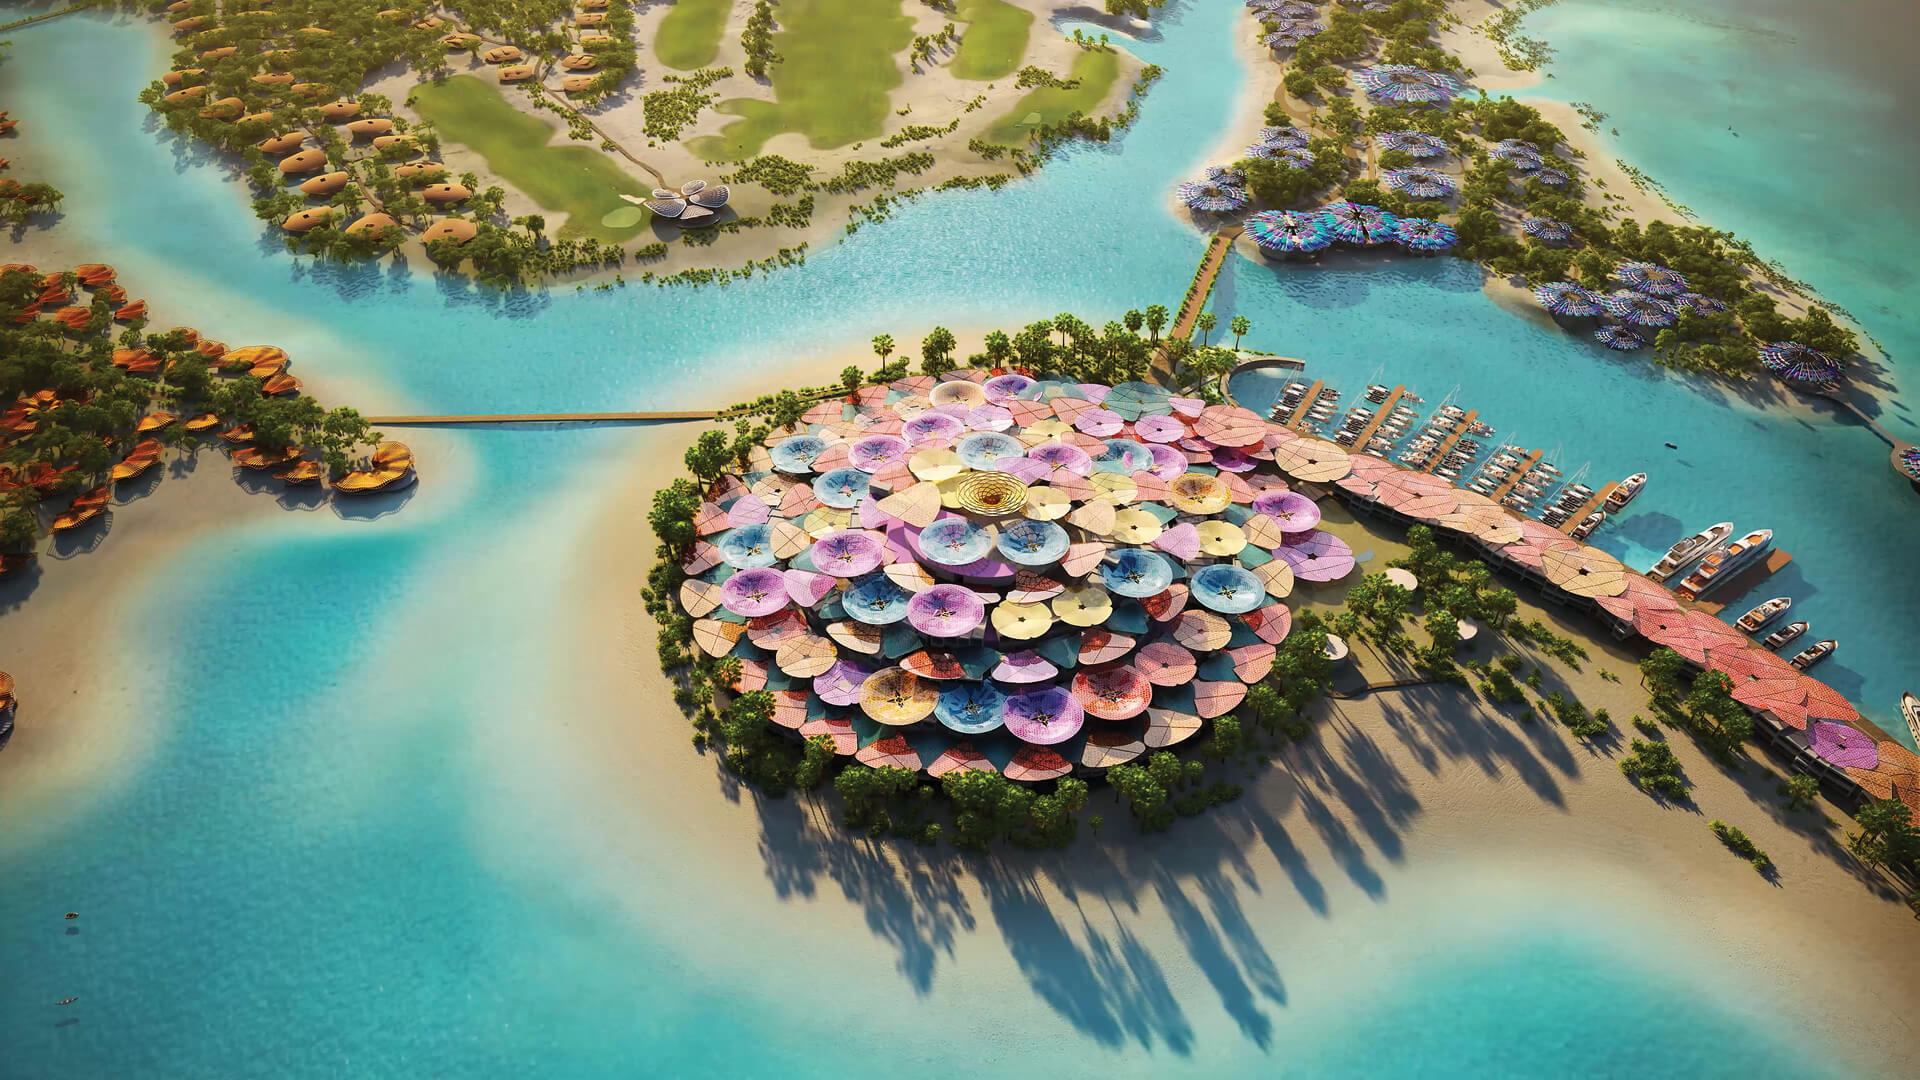 Aerial view of the Coral Bloom luxury resort imagined by Foster + Partners | Foster + Partners imagines the Coral Bloom Resort for TRSDC | STIRworld